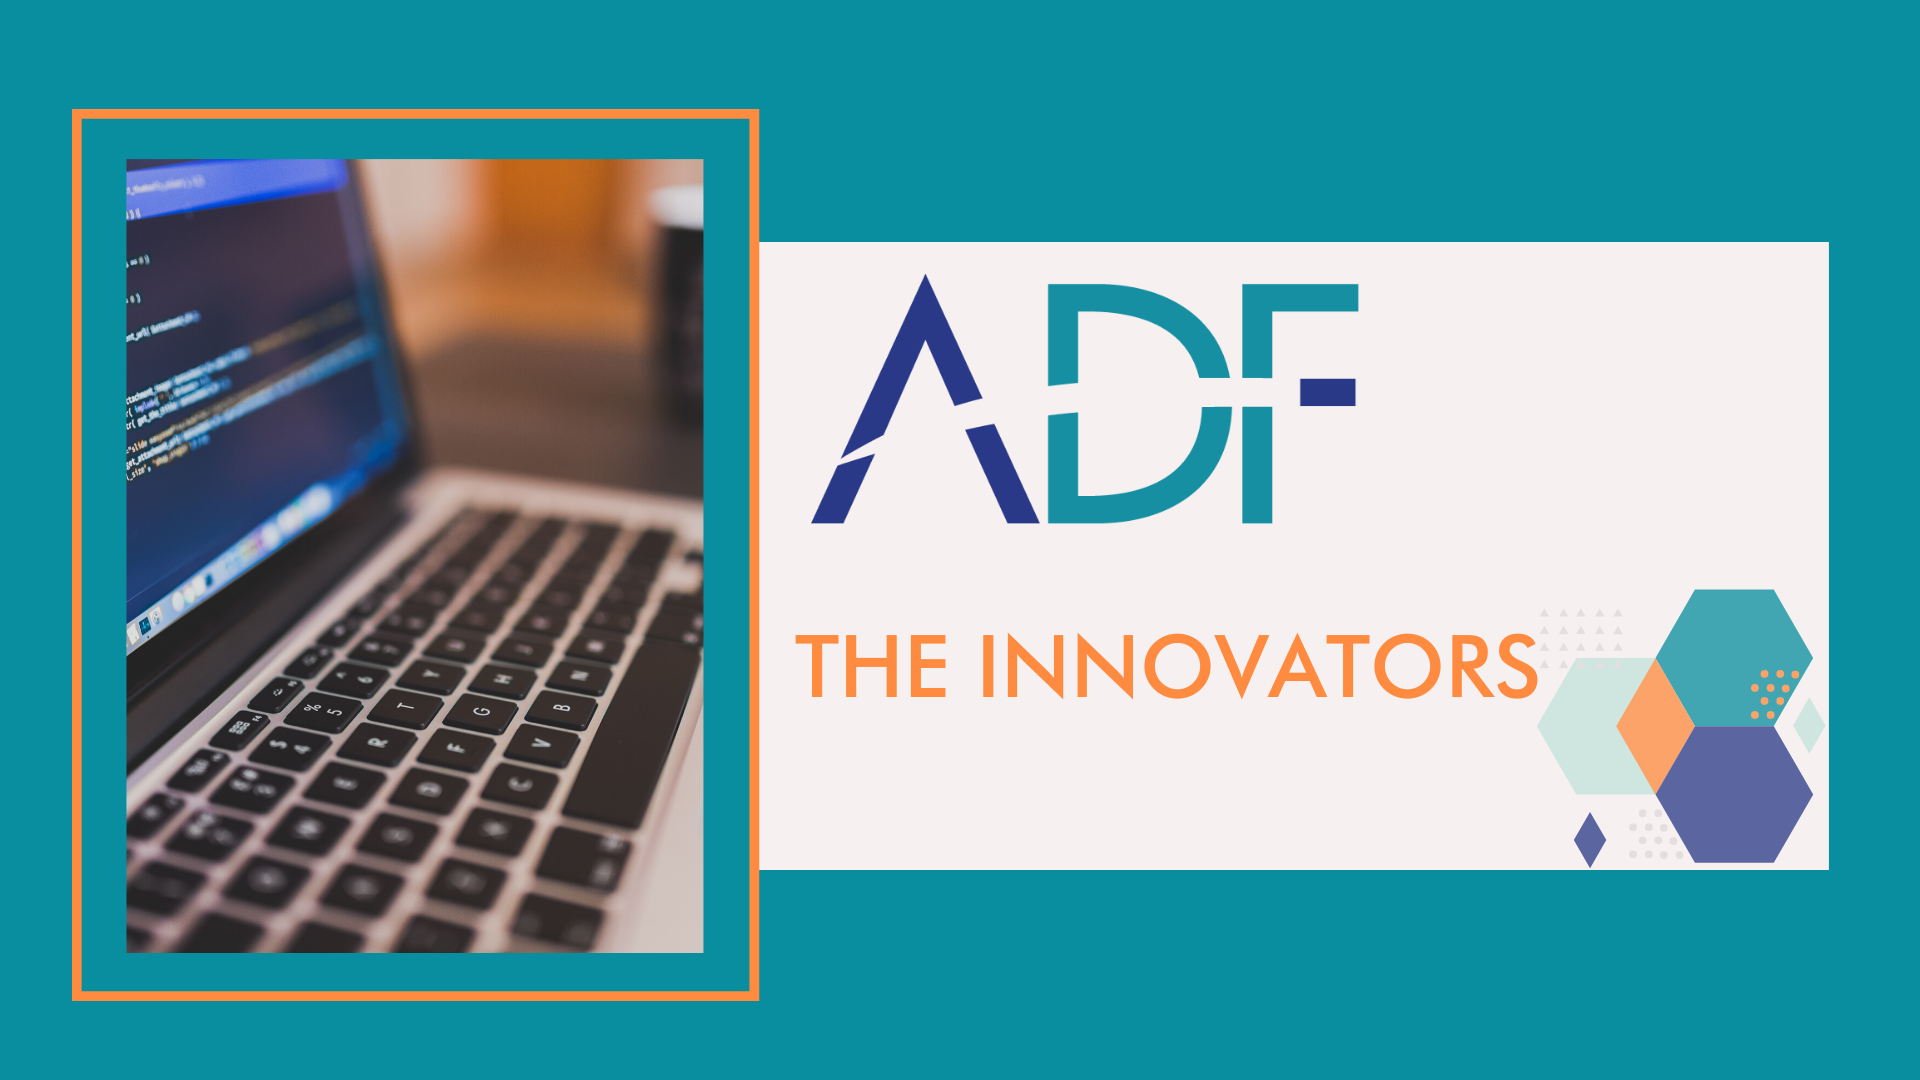 ADF as an Innovator in Digital Forensic Software